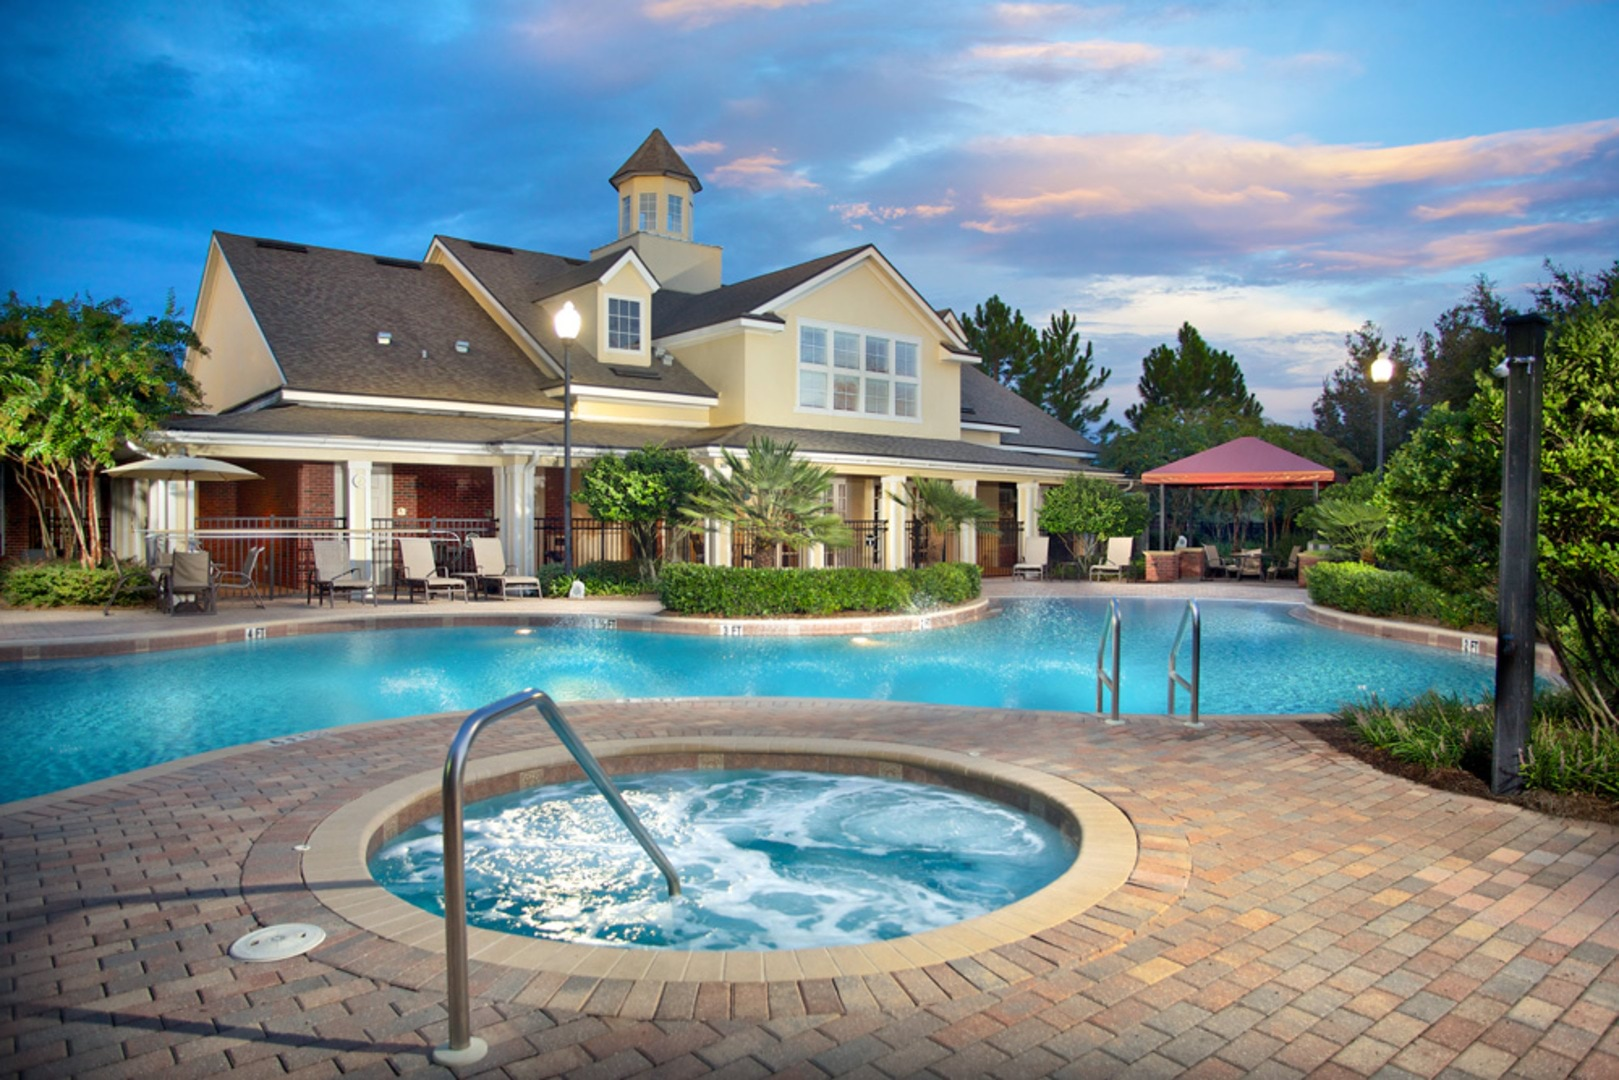 One Bedroom Apartments Tallahassee Apartments In Tallahassee Fl Provenza At Southwood